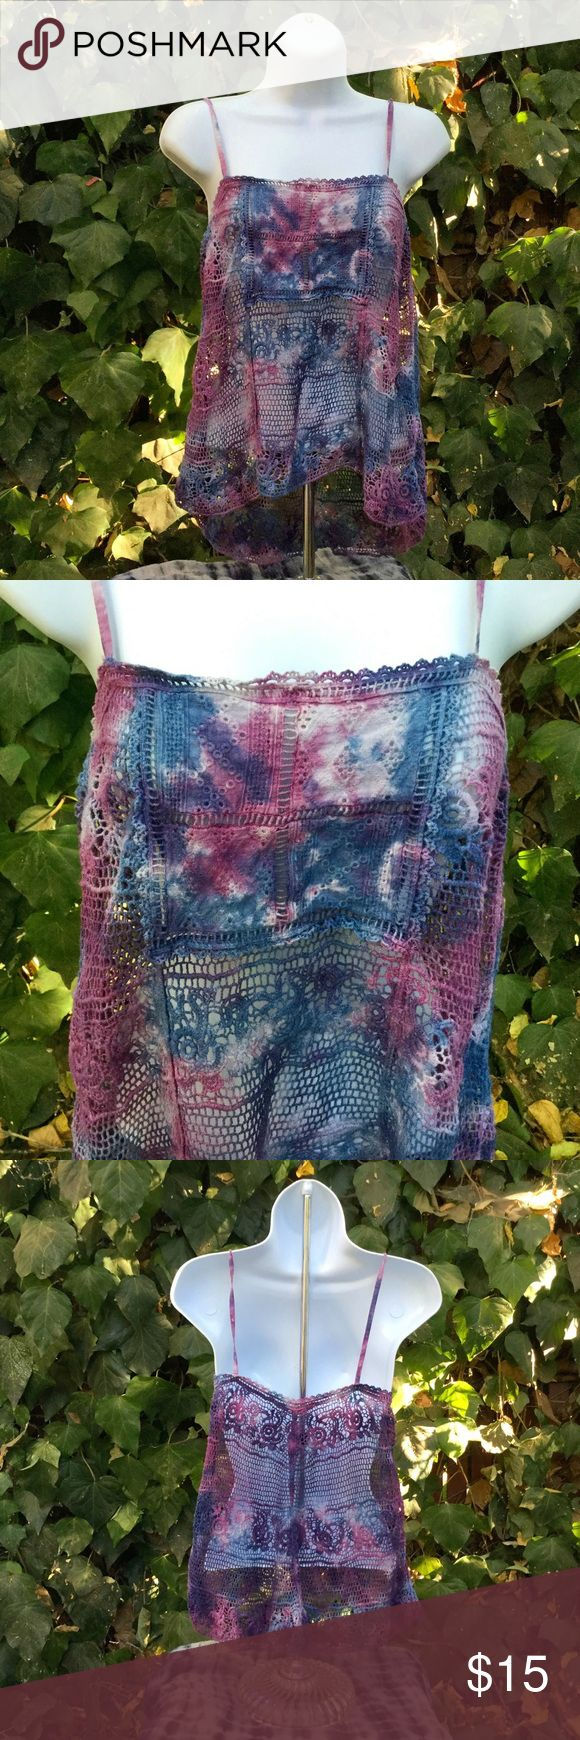 Ecote Tie Dye Crocheted Top Cute tank top with purple, blue, and white tie dye pattern. Looks cute with bandeau underneath. Ecote Tops